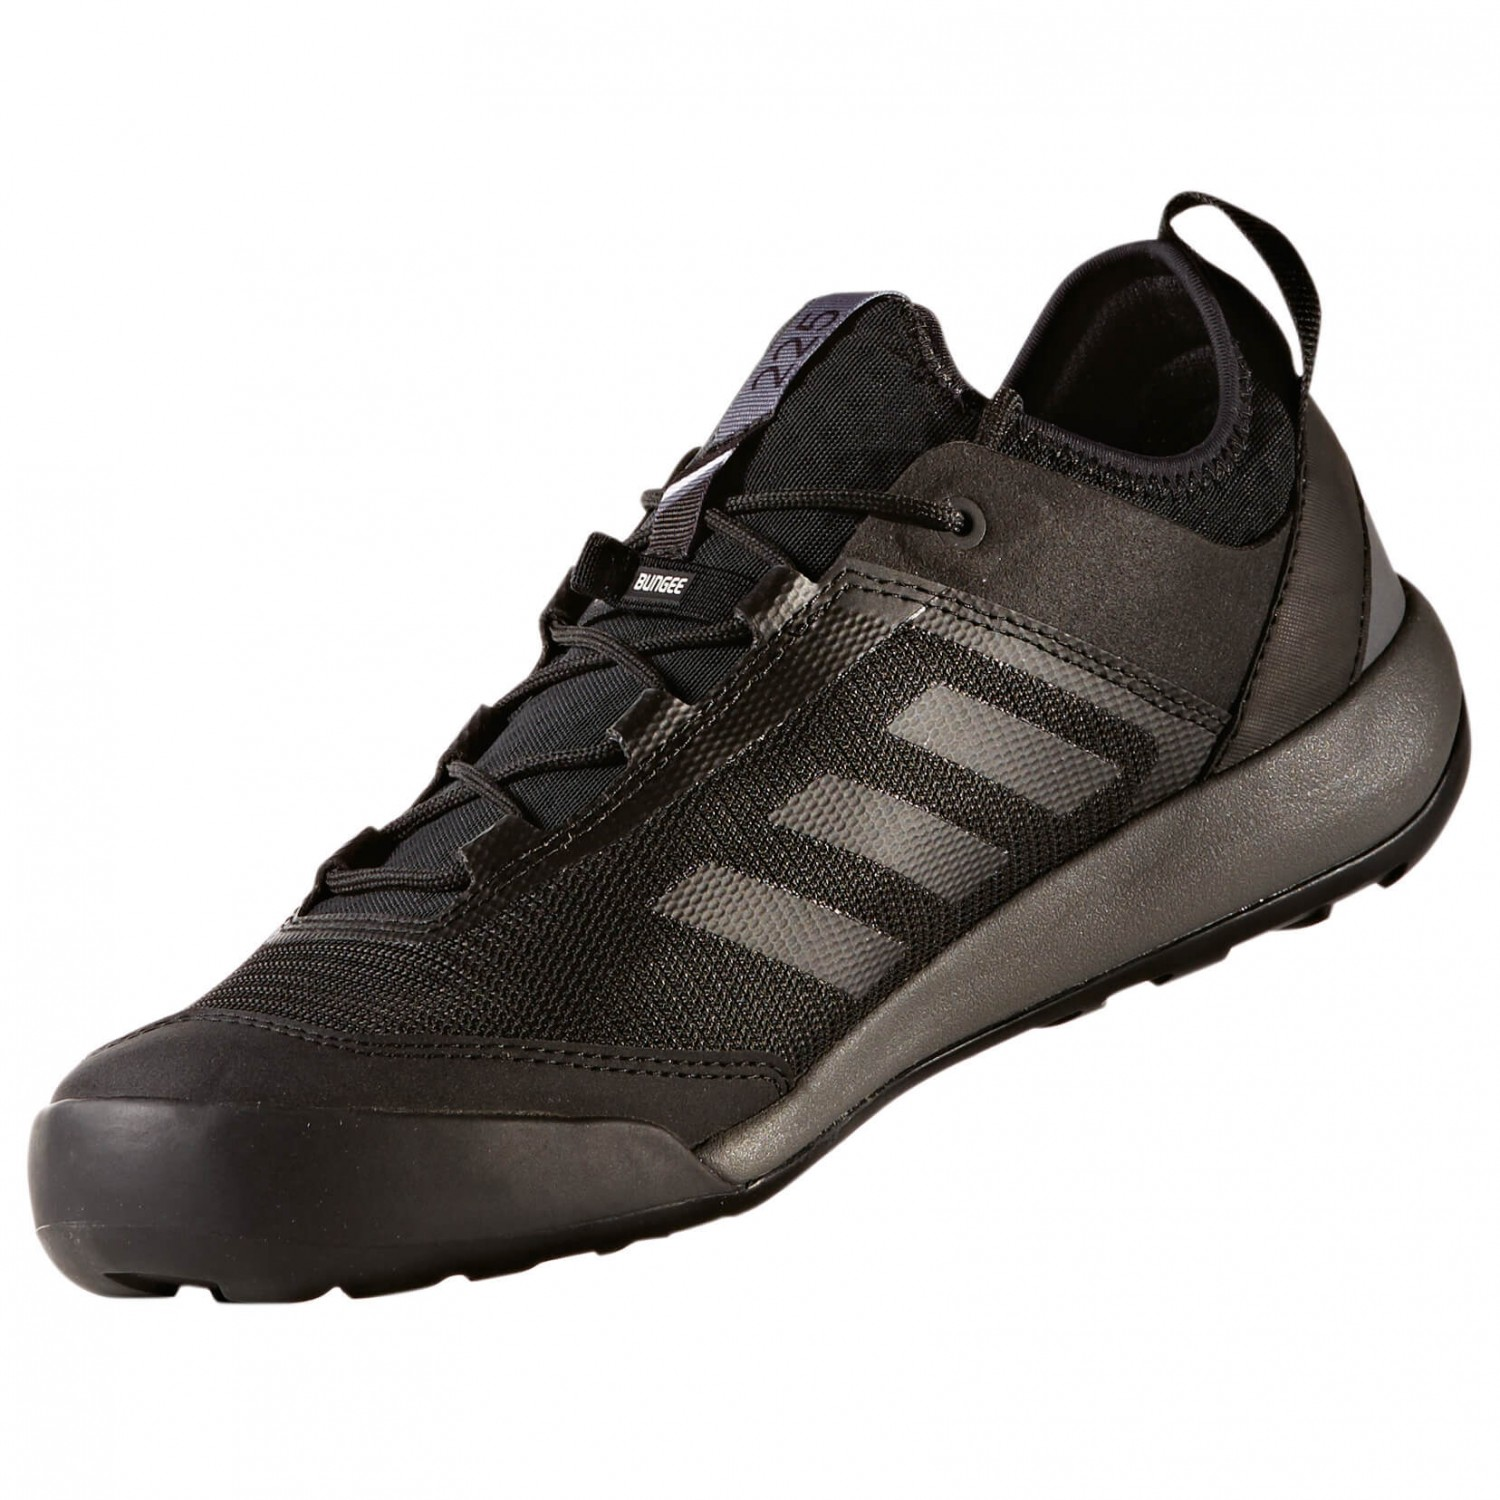 get cheap 8ad74 81cf7 Adidas Terrex Swift Solo - Approach Shoes Men s   Free UK Delivery ...